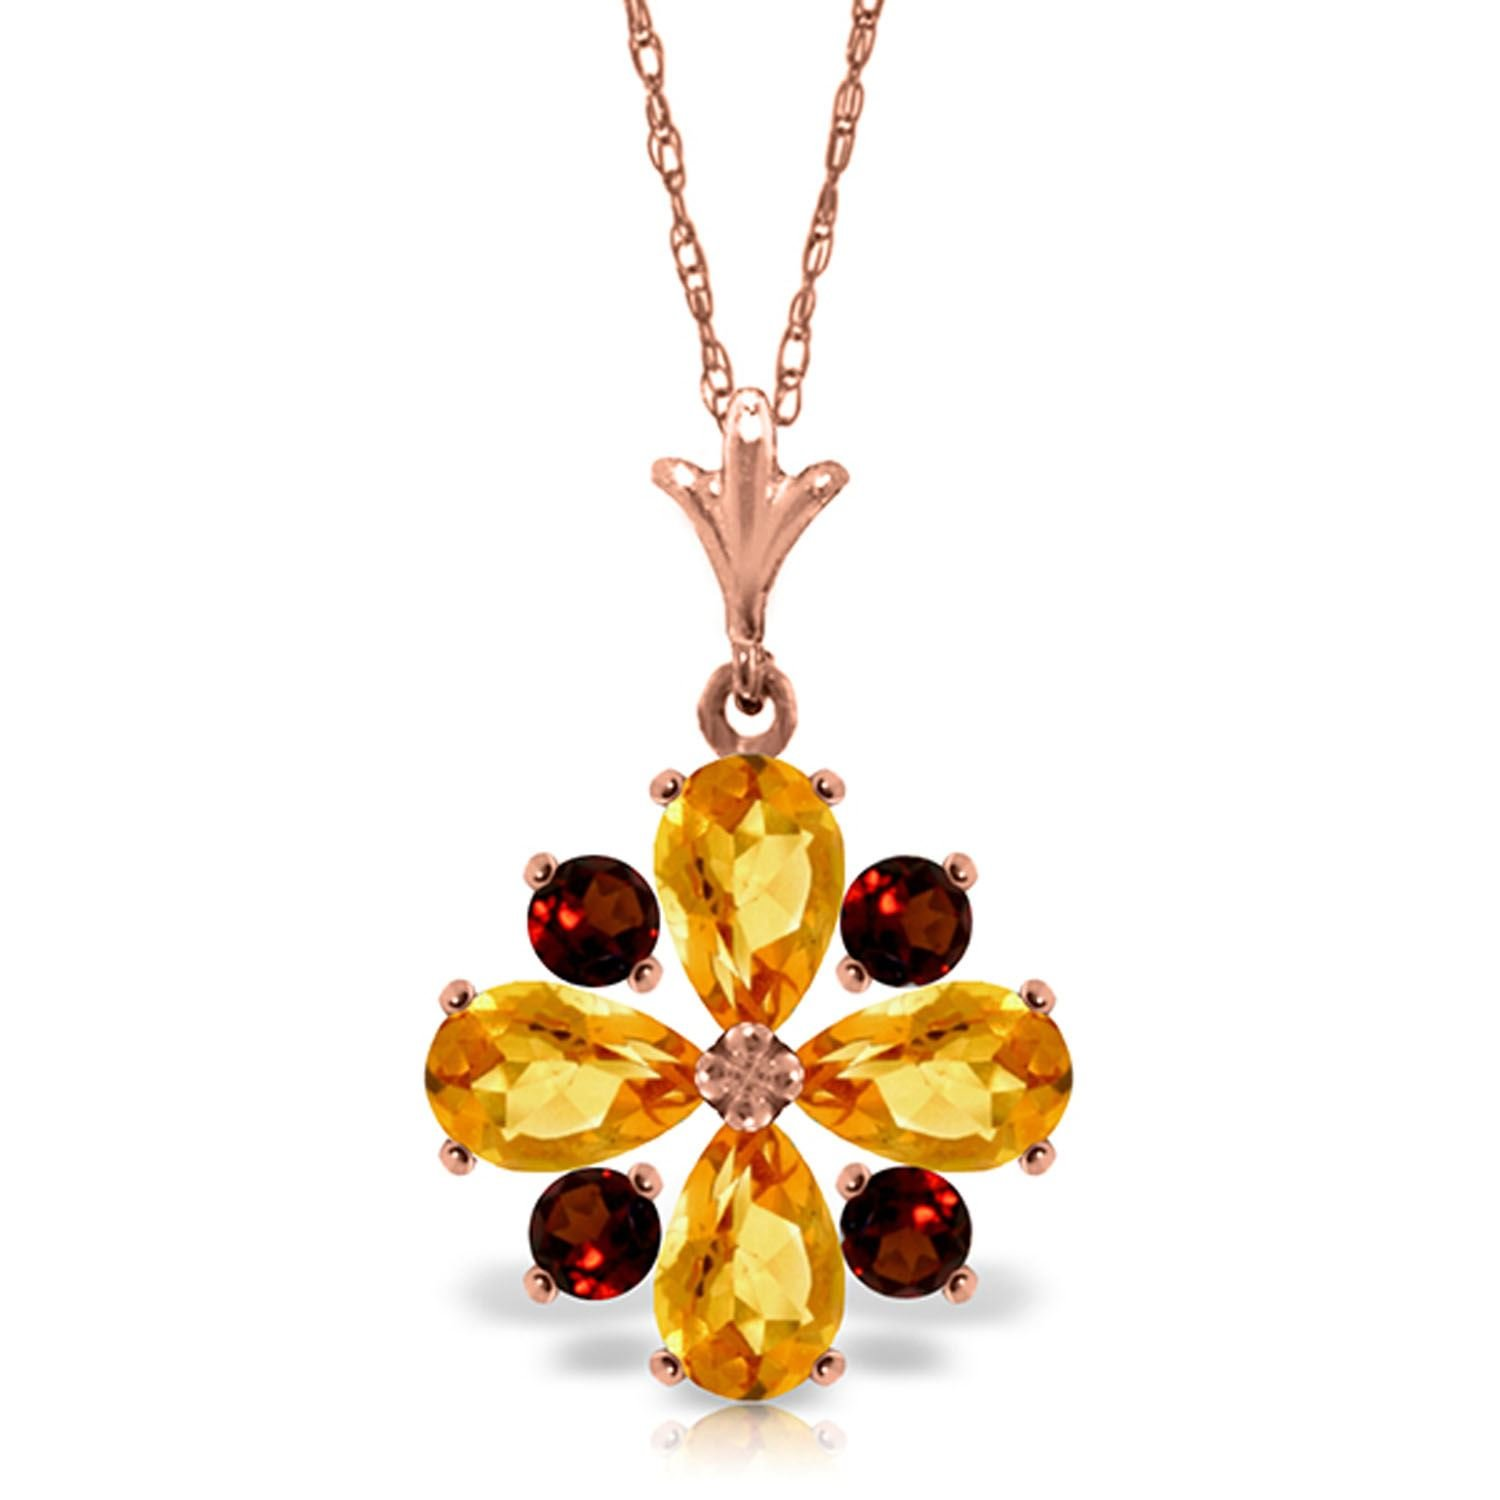 ALARRI 2.43 Carat 14K Solid Rose Gold Passion Citrine Garnet Necklace with 20 Inch Chain Length